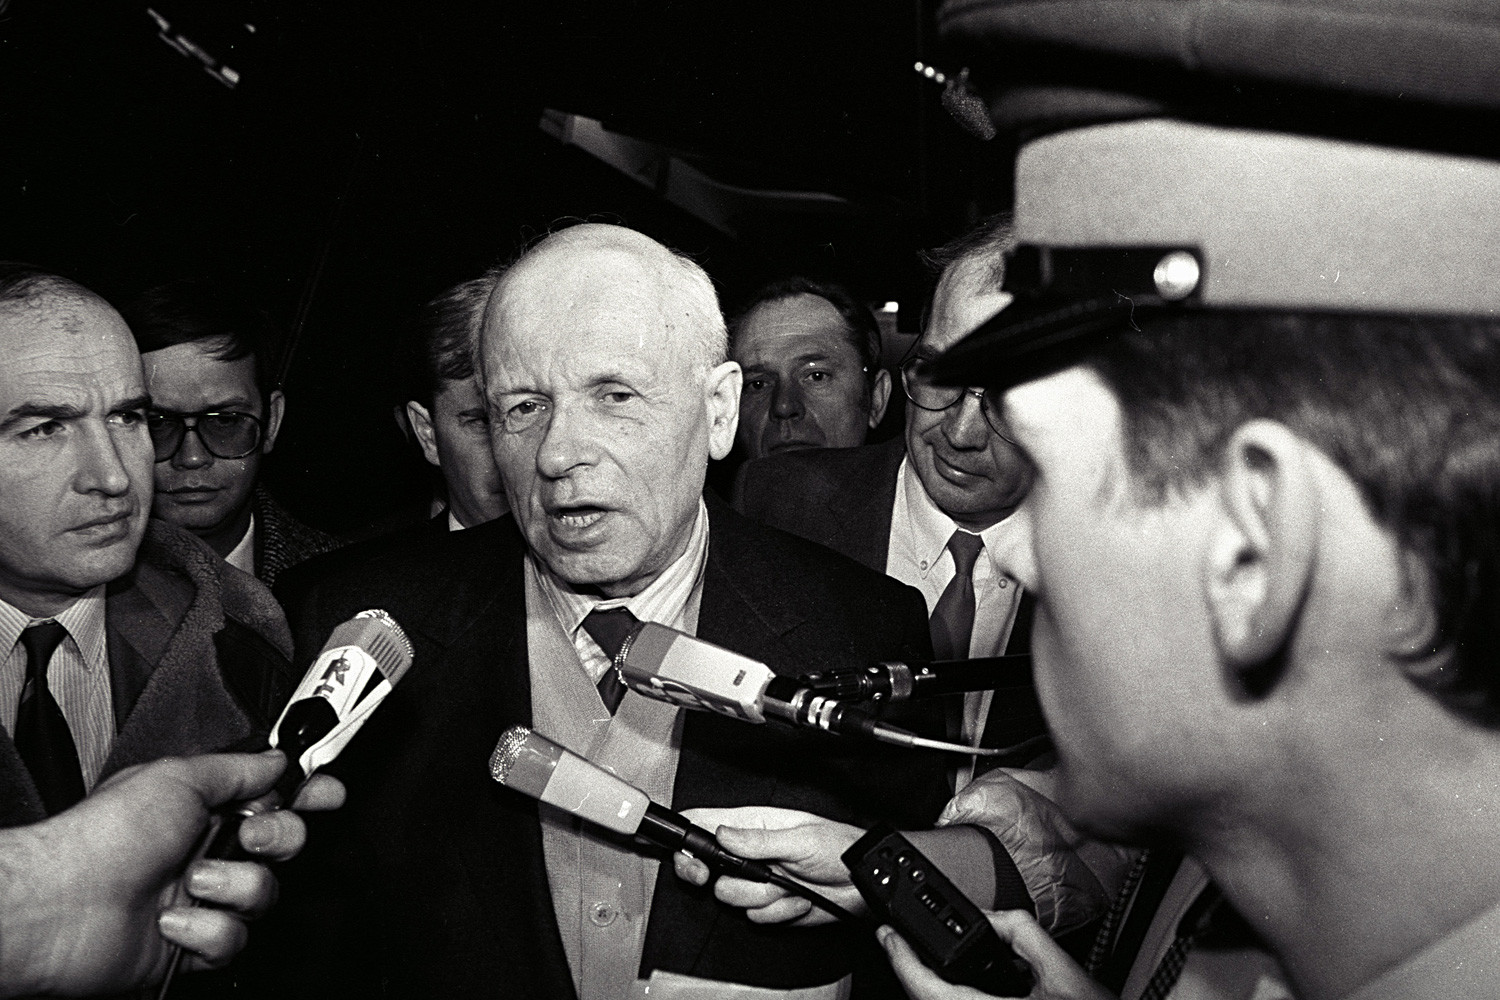 Andrei Sakharov arrives at Paris's Orly airport to participate in the ceremonies for the 40th anniversary of the United Nation's adoption of the universal declaration of human rights. (Dec. 9, 1988)